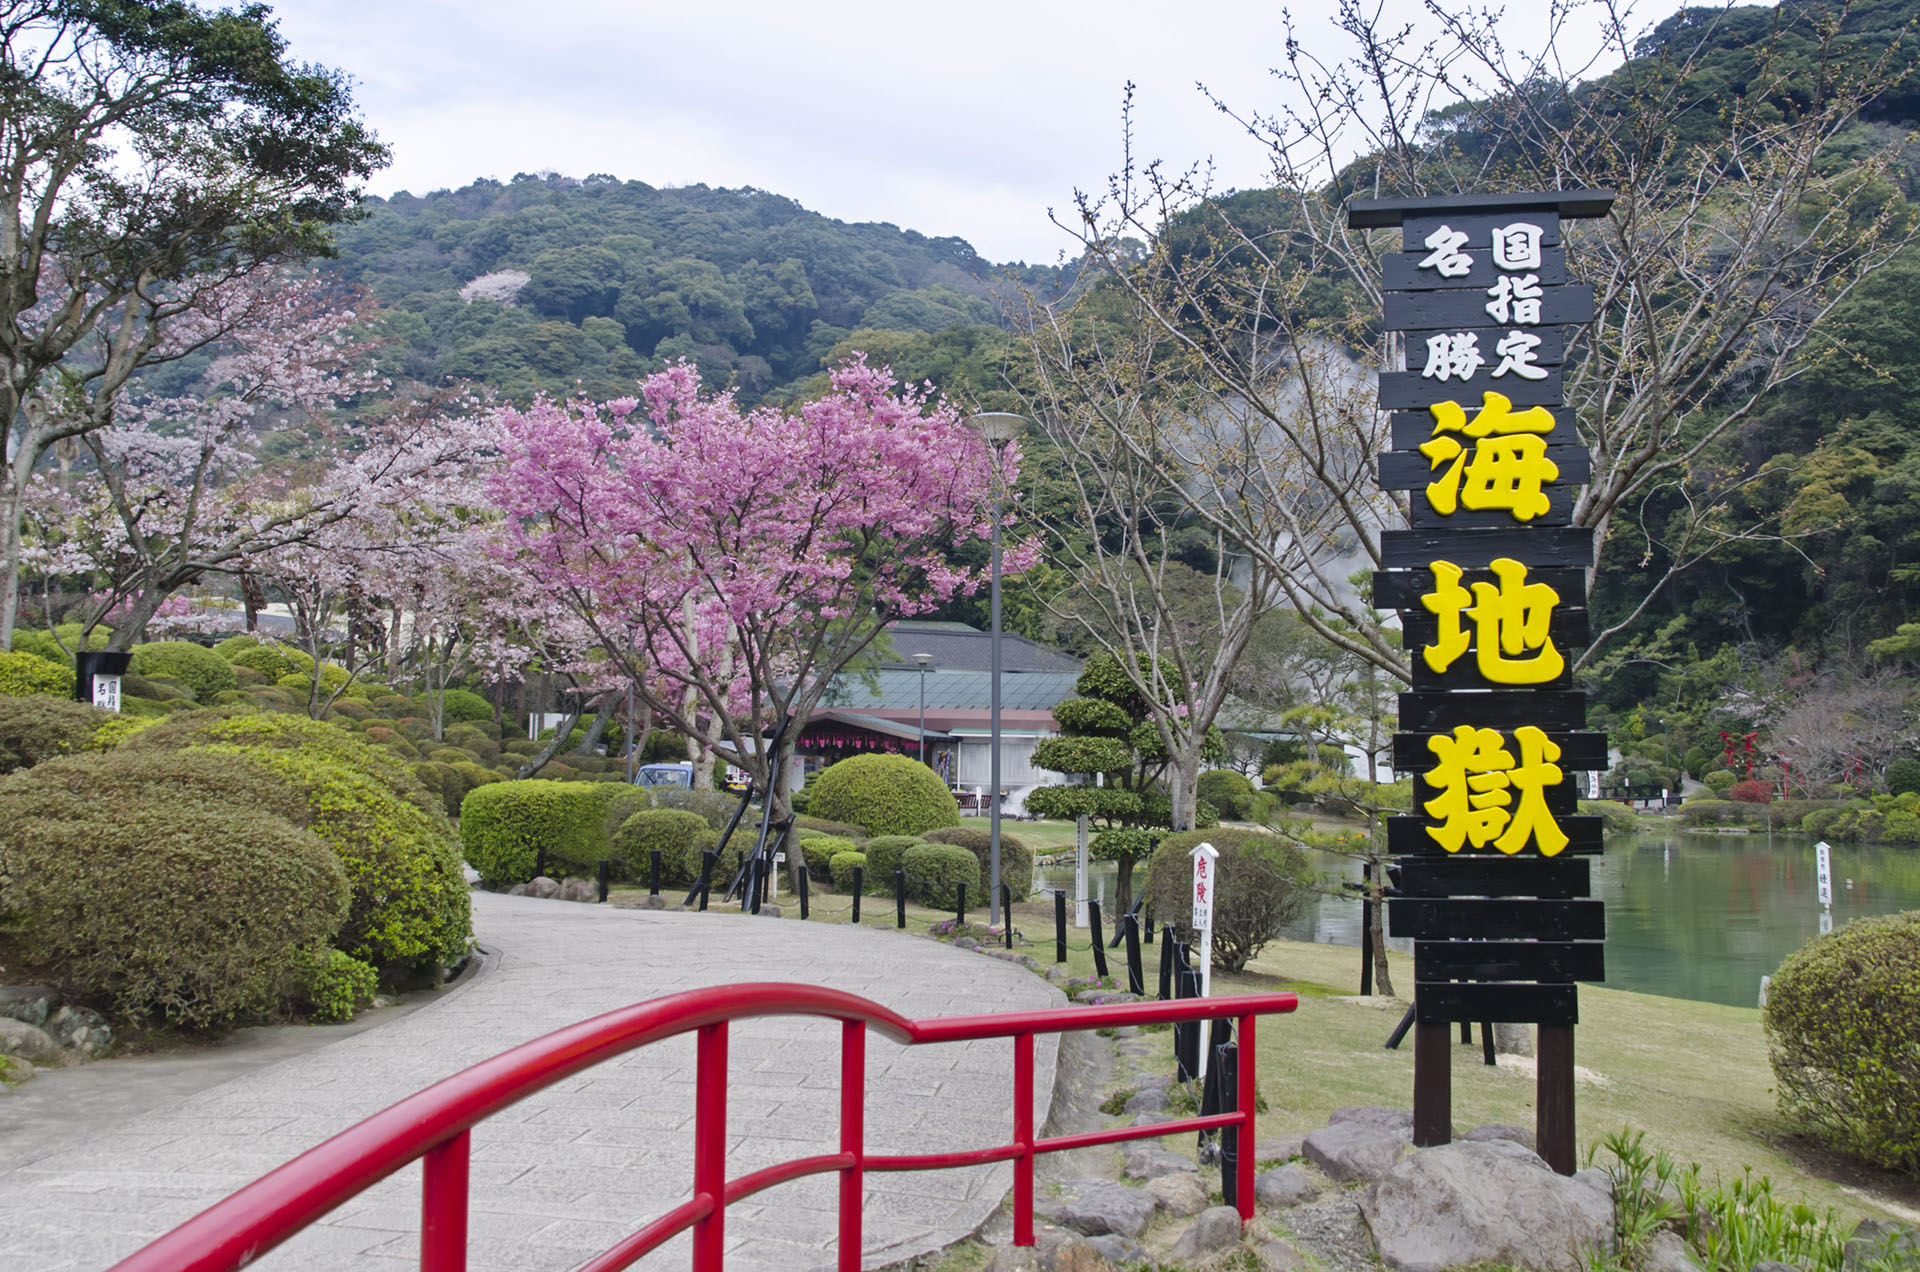 Best things to do in Beppu